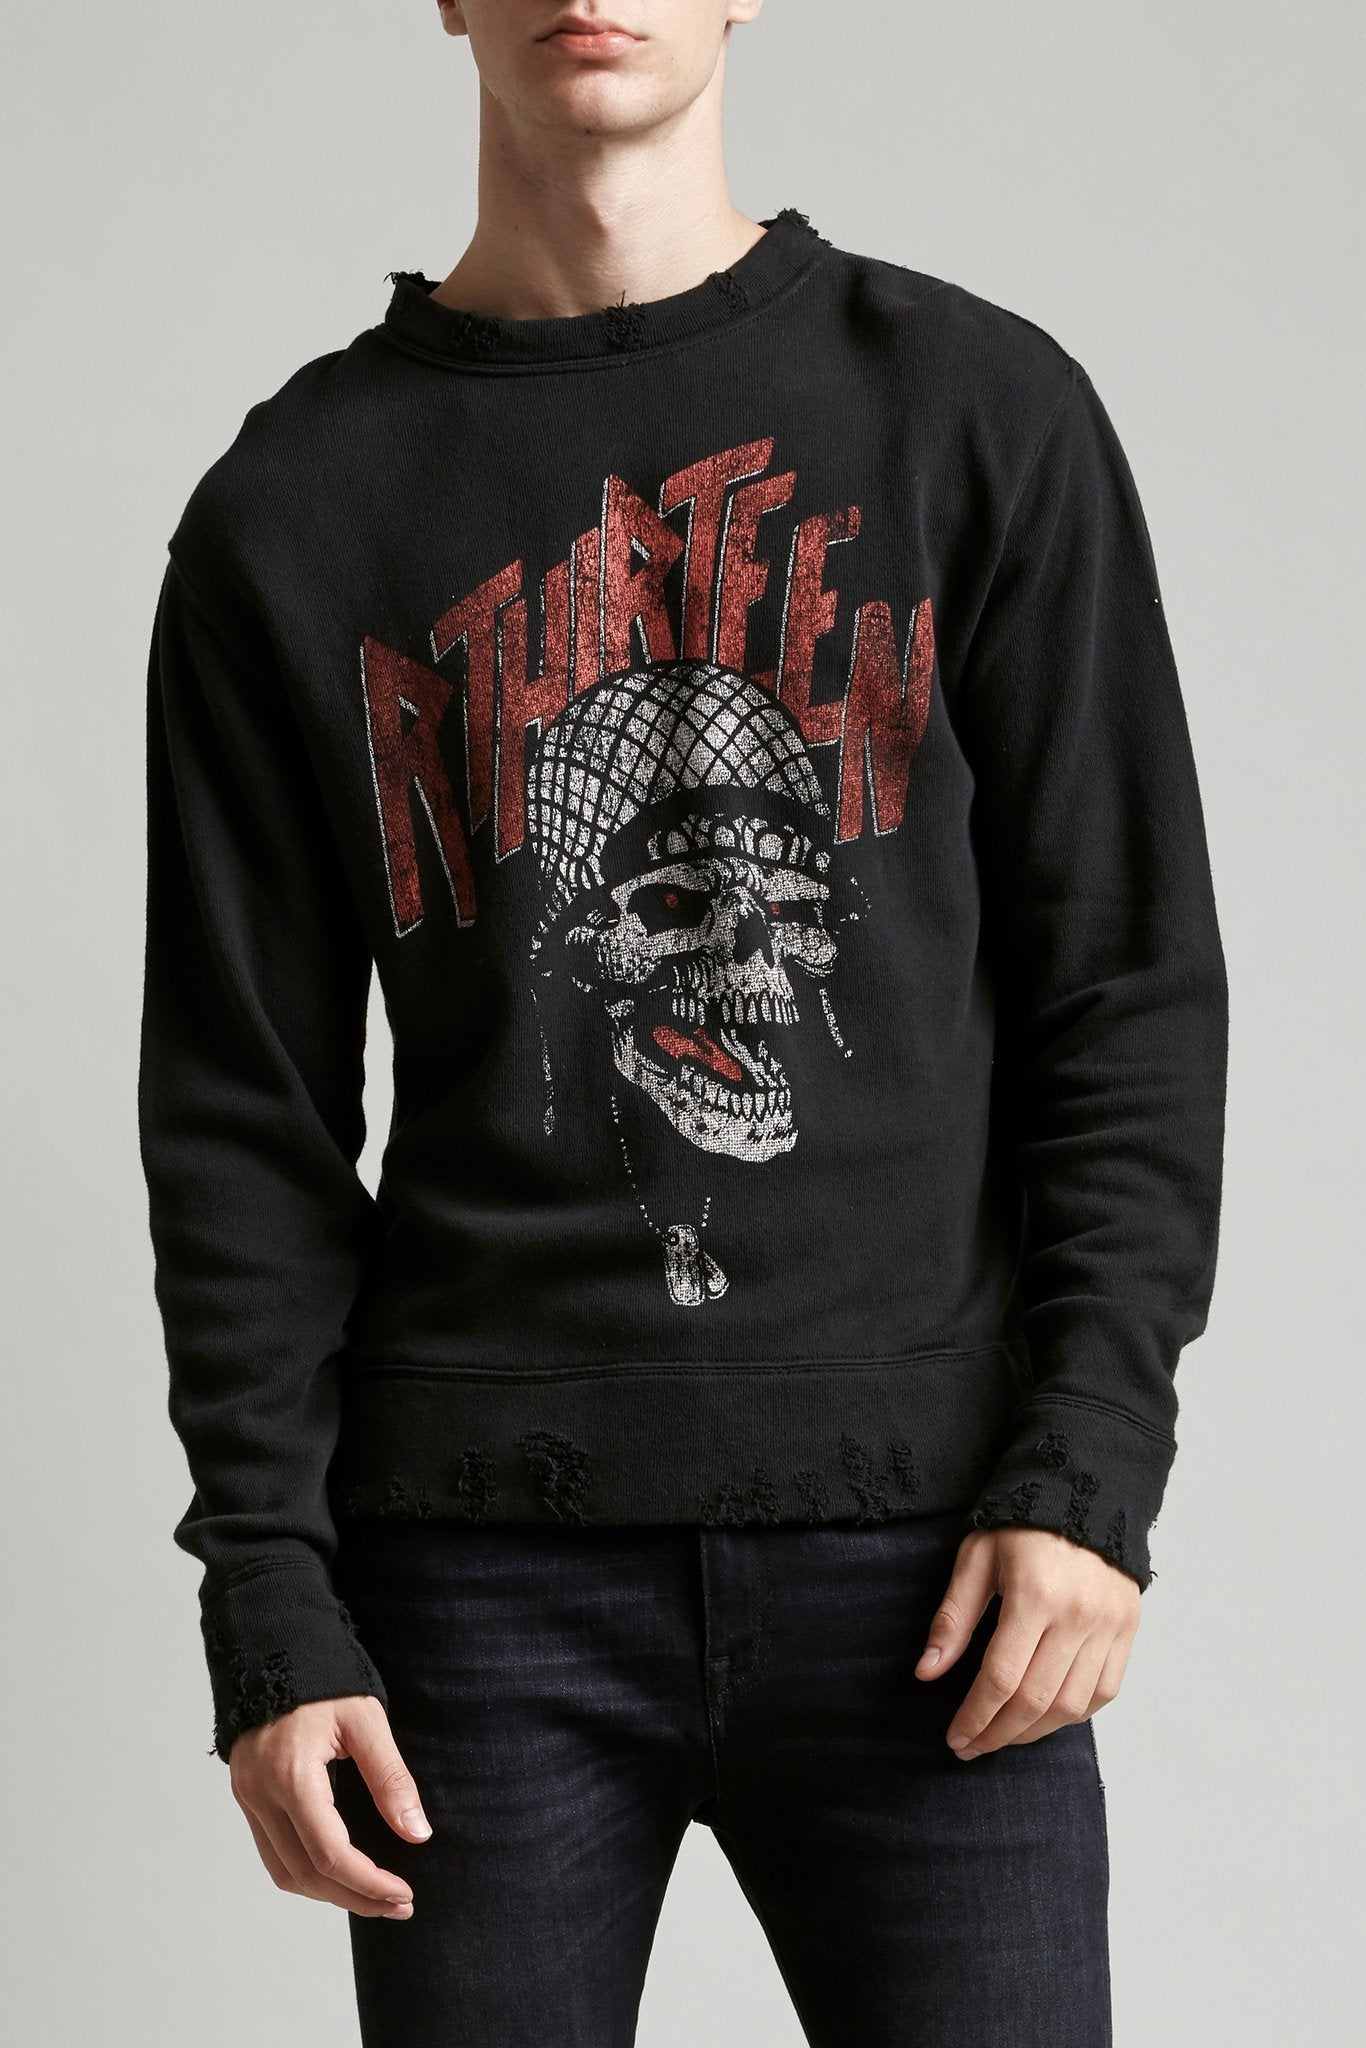 Battle Punk Vintage Sweatshirt